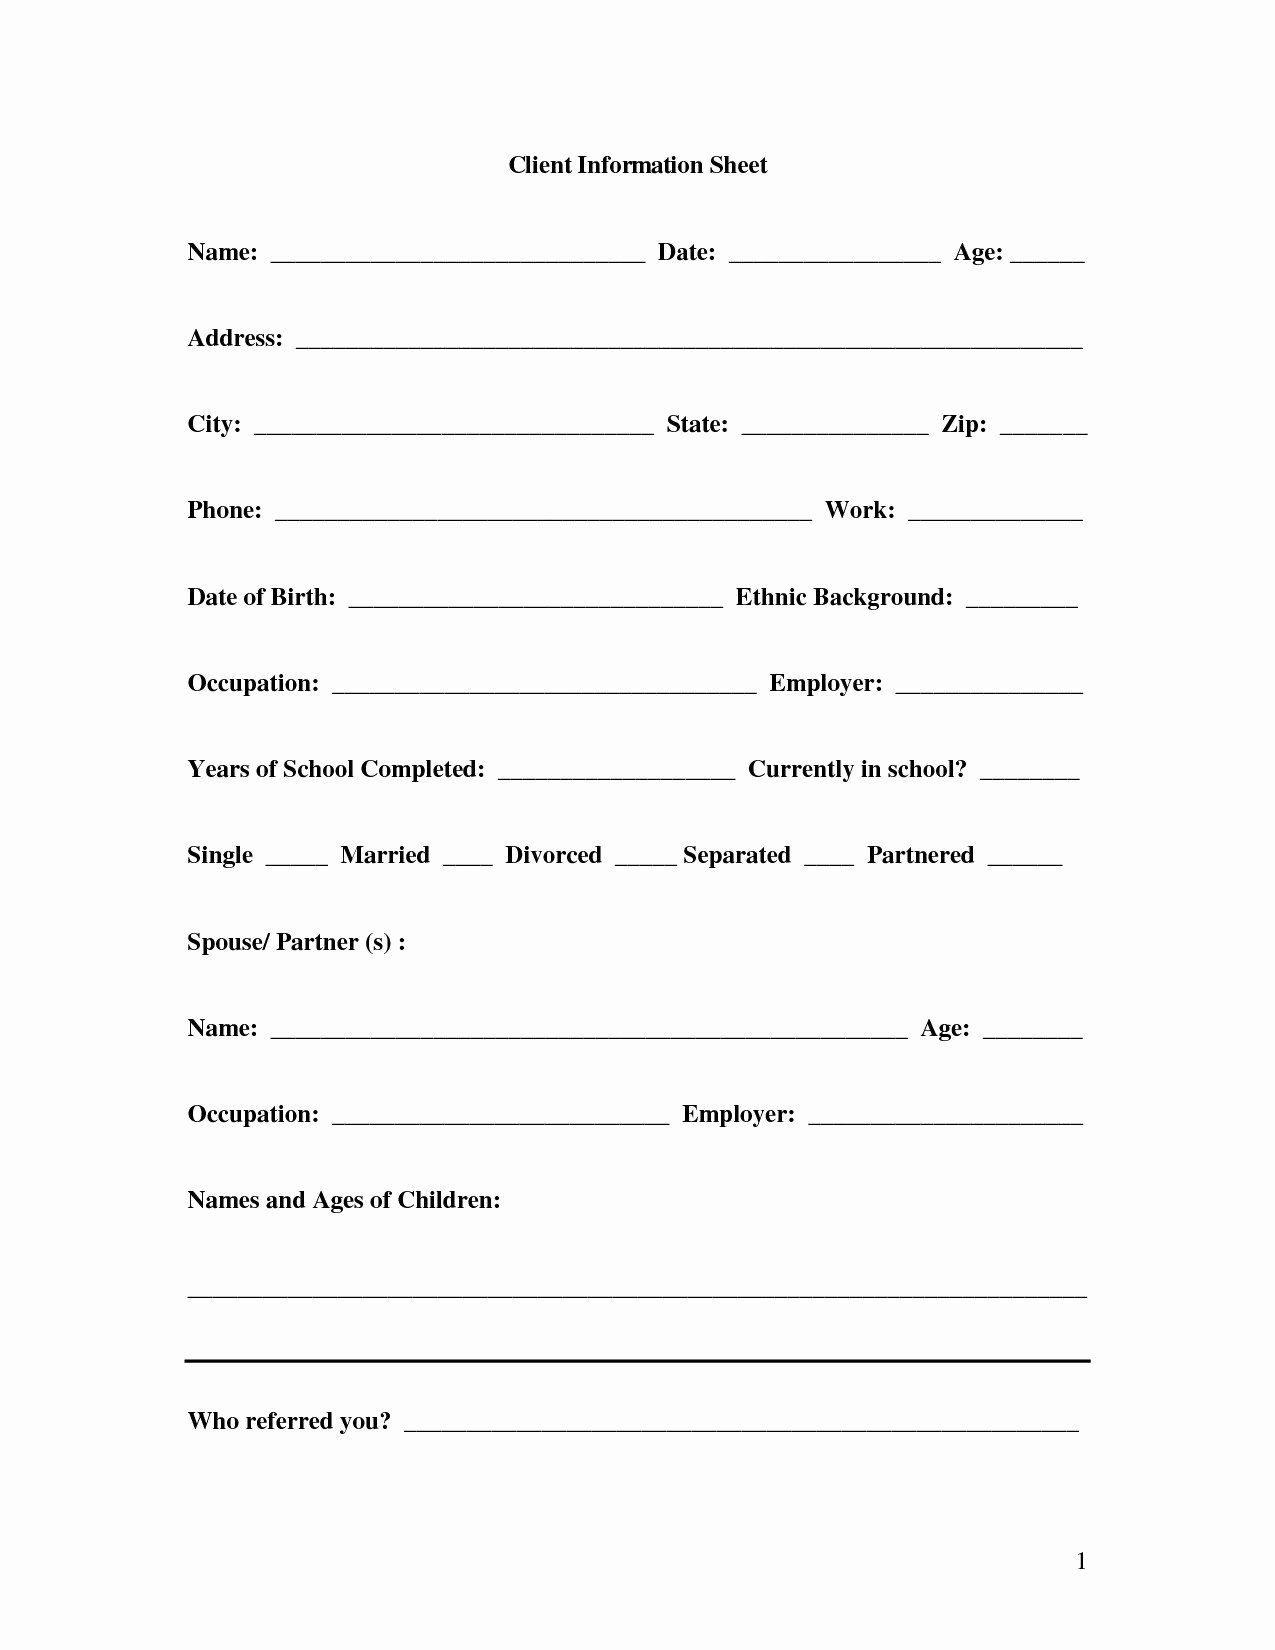 New Client form Template Elegant New Business Client